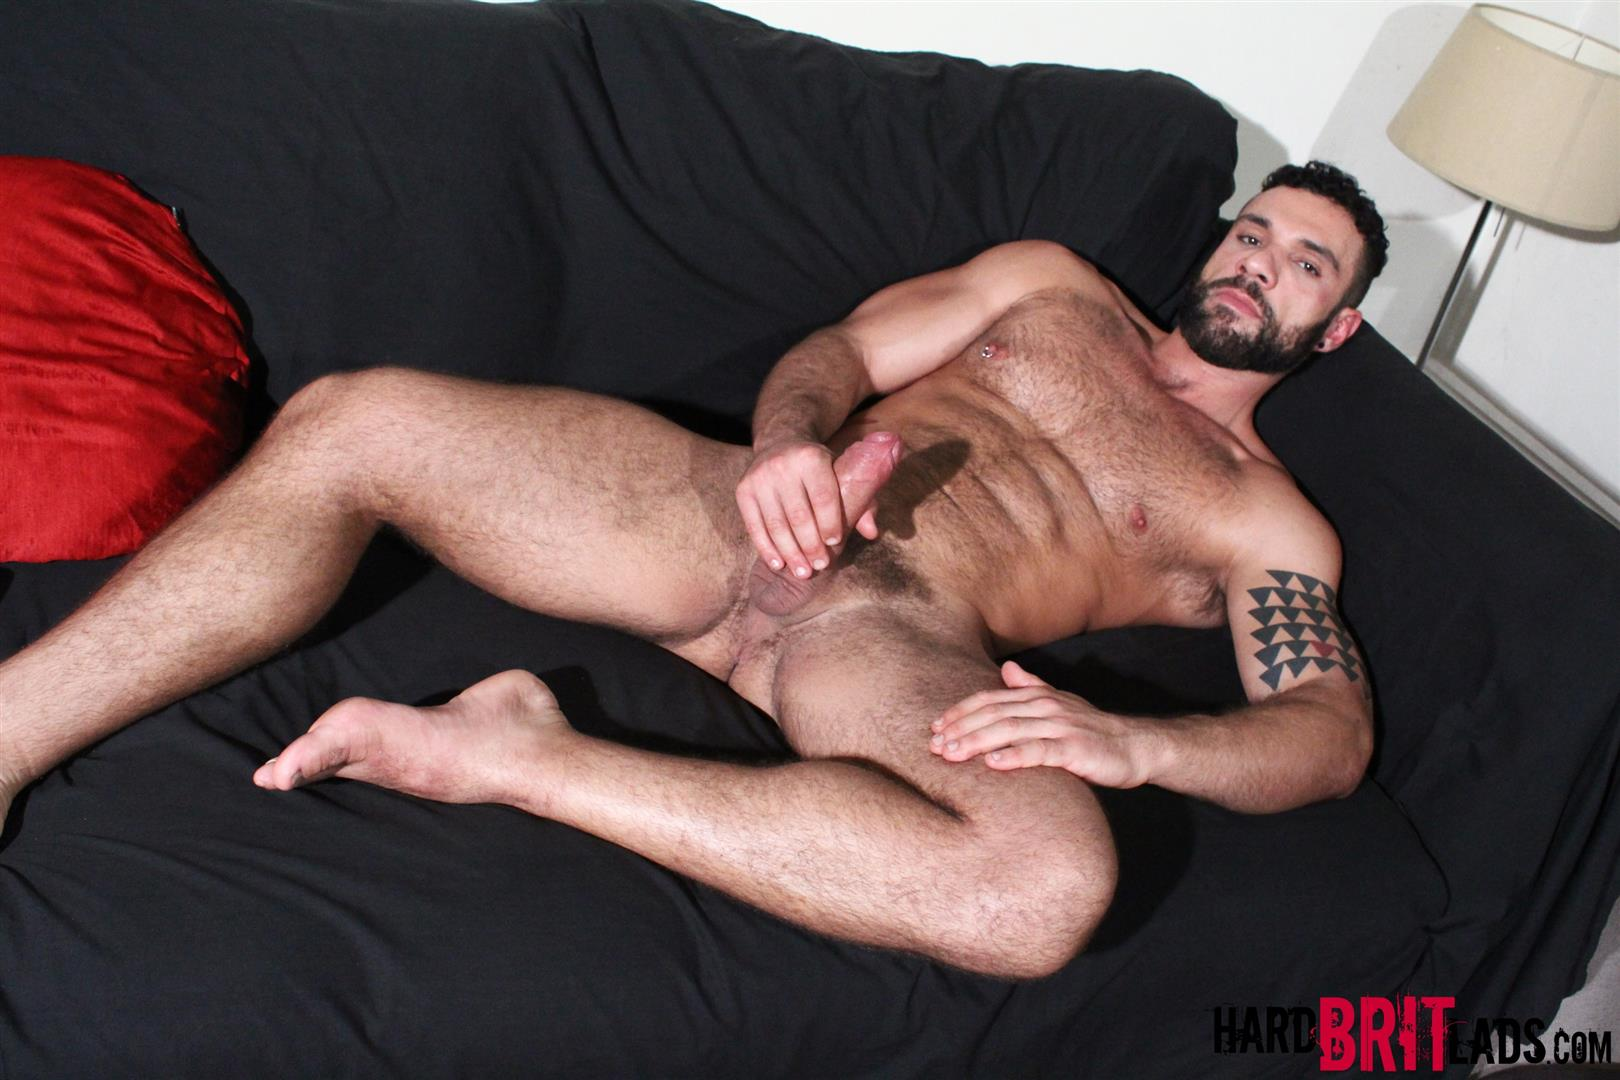 Hard-Brit-Lads-Letterio-Amadeo-Hairy-Rugby-Player-With-A-Big-uncut-Cock-Amateur-Gay-Porn-10 Beefy Hairy Muscle Rugby Player Playing With His Big Uncut Cock